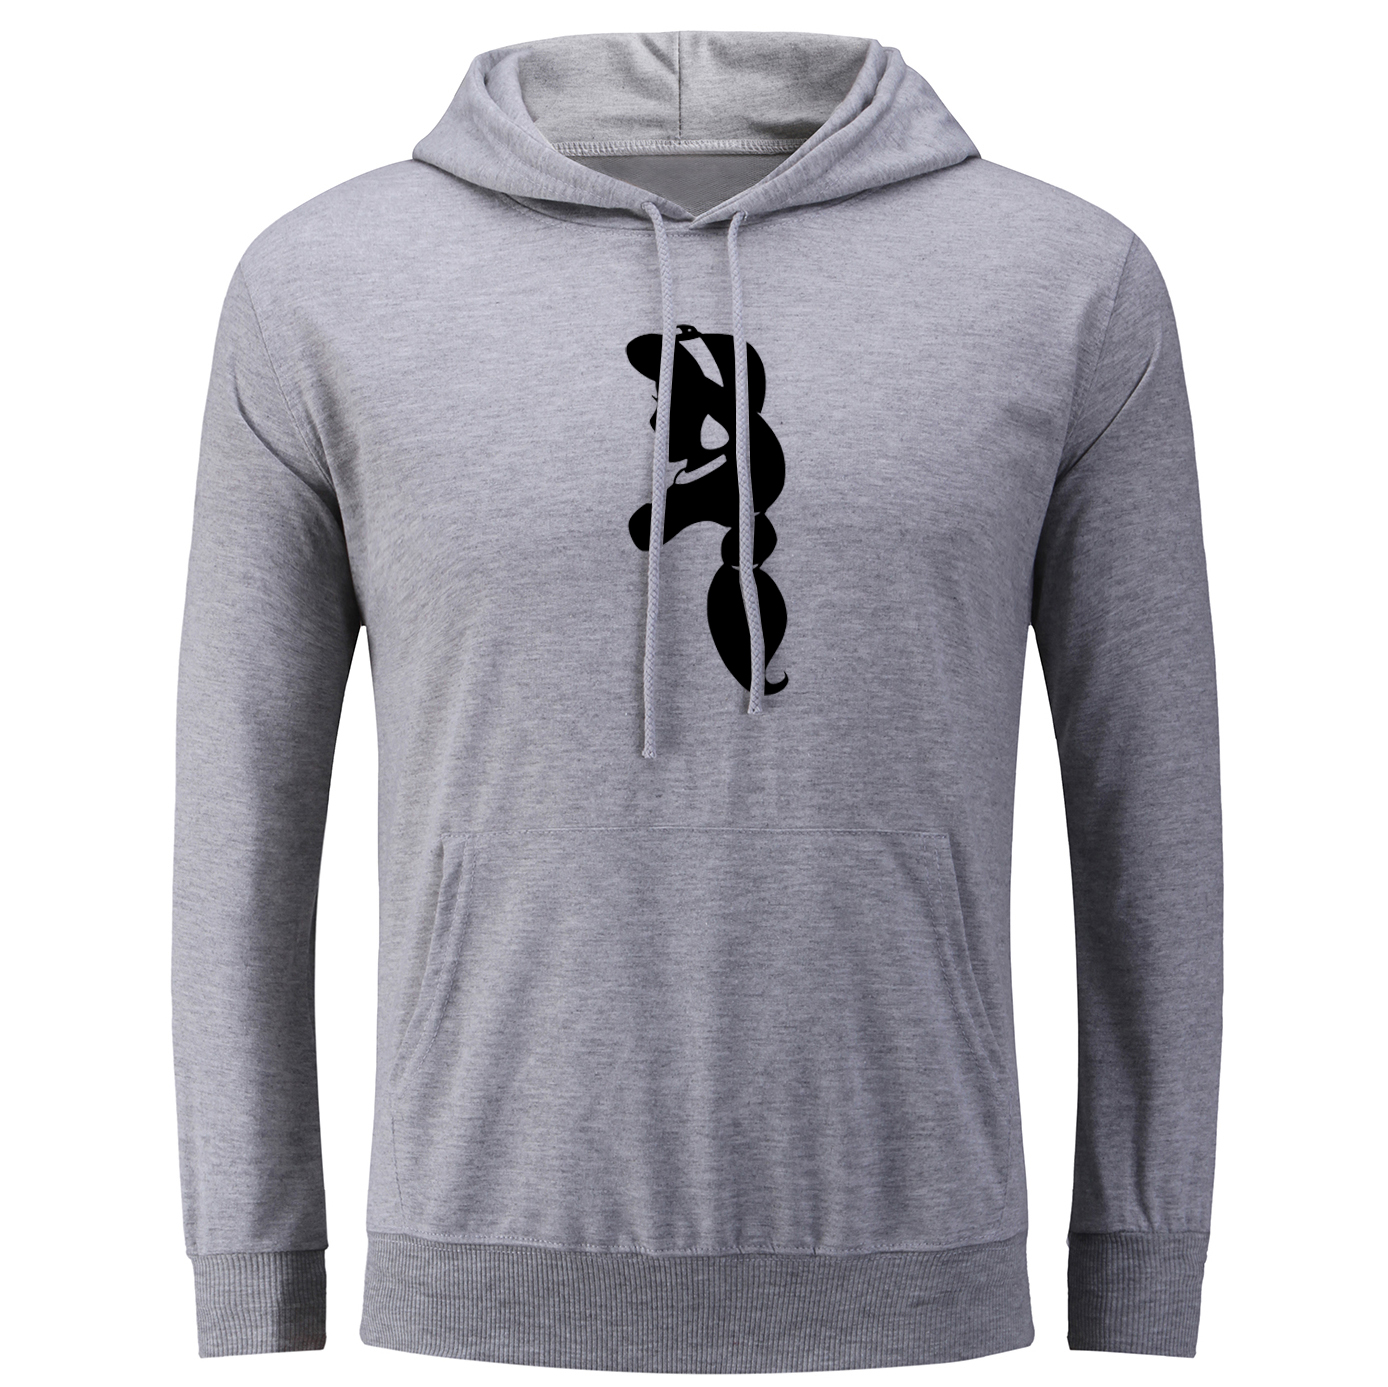 And Children Impartial Idzn Womens Hoodies Aladdin And The Magic Lamp Princess Jasmine Punk Tattoo Smoking Casual Style Girls Sweatshirts Tops S-3xl Suitable For Men Women